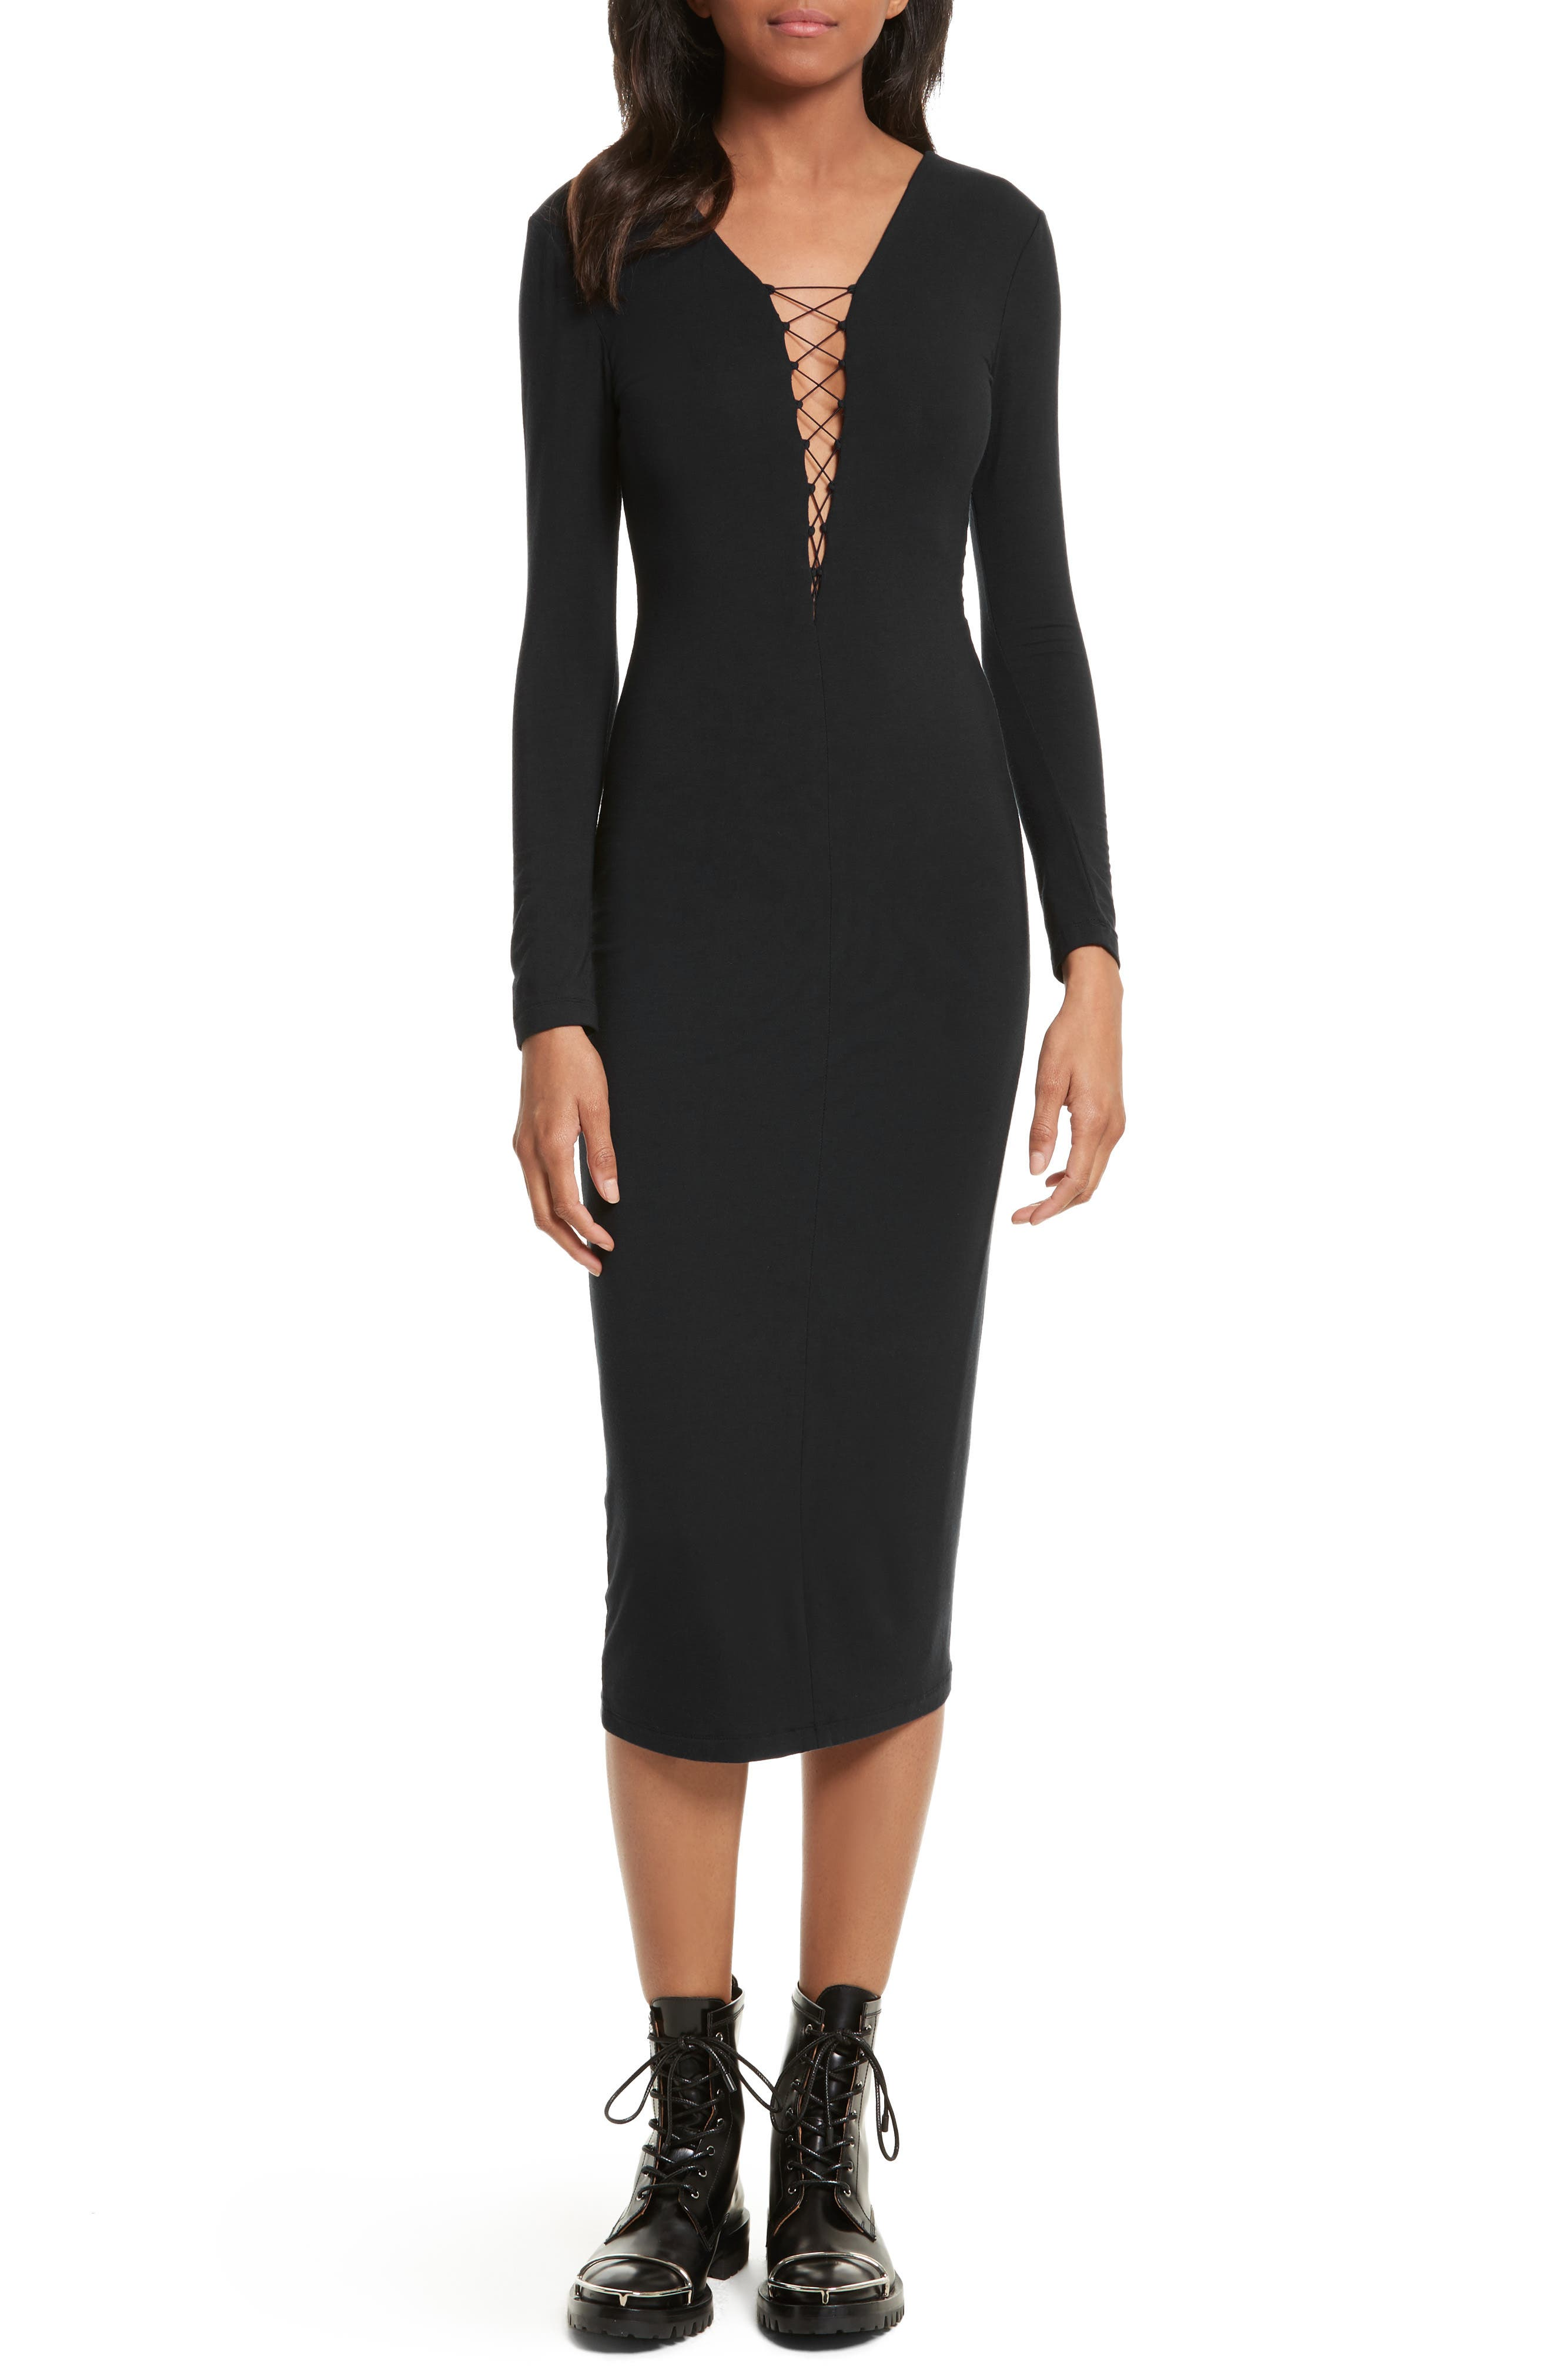 Alternate Image 1 Selected - T by Alexander Wang Lace-Up Stretch Jersey Midi Dress